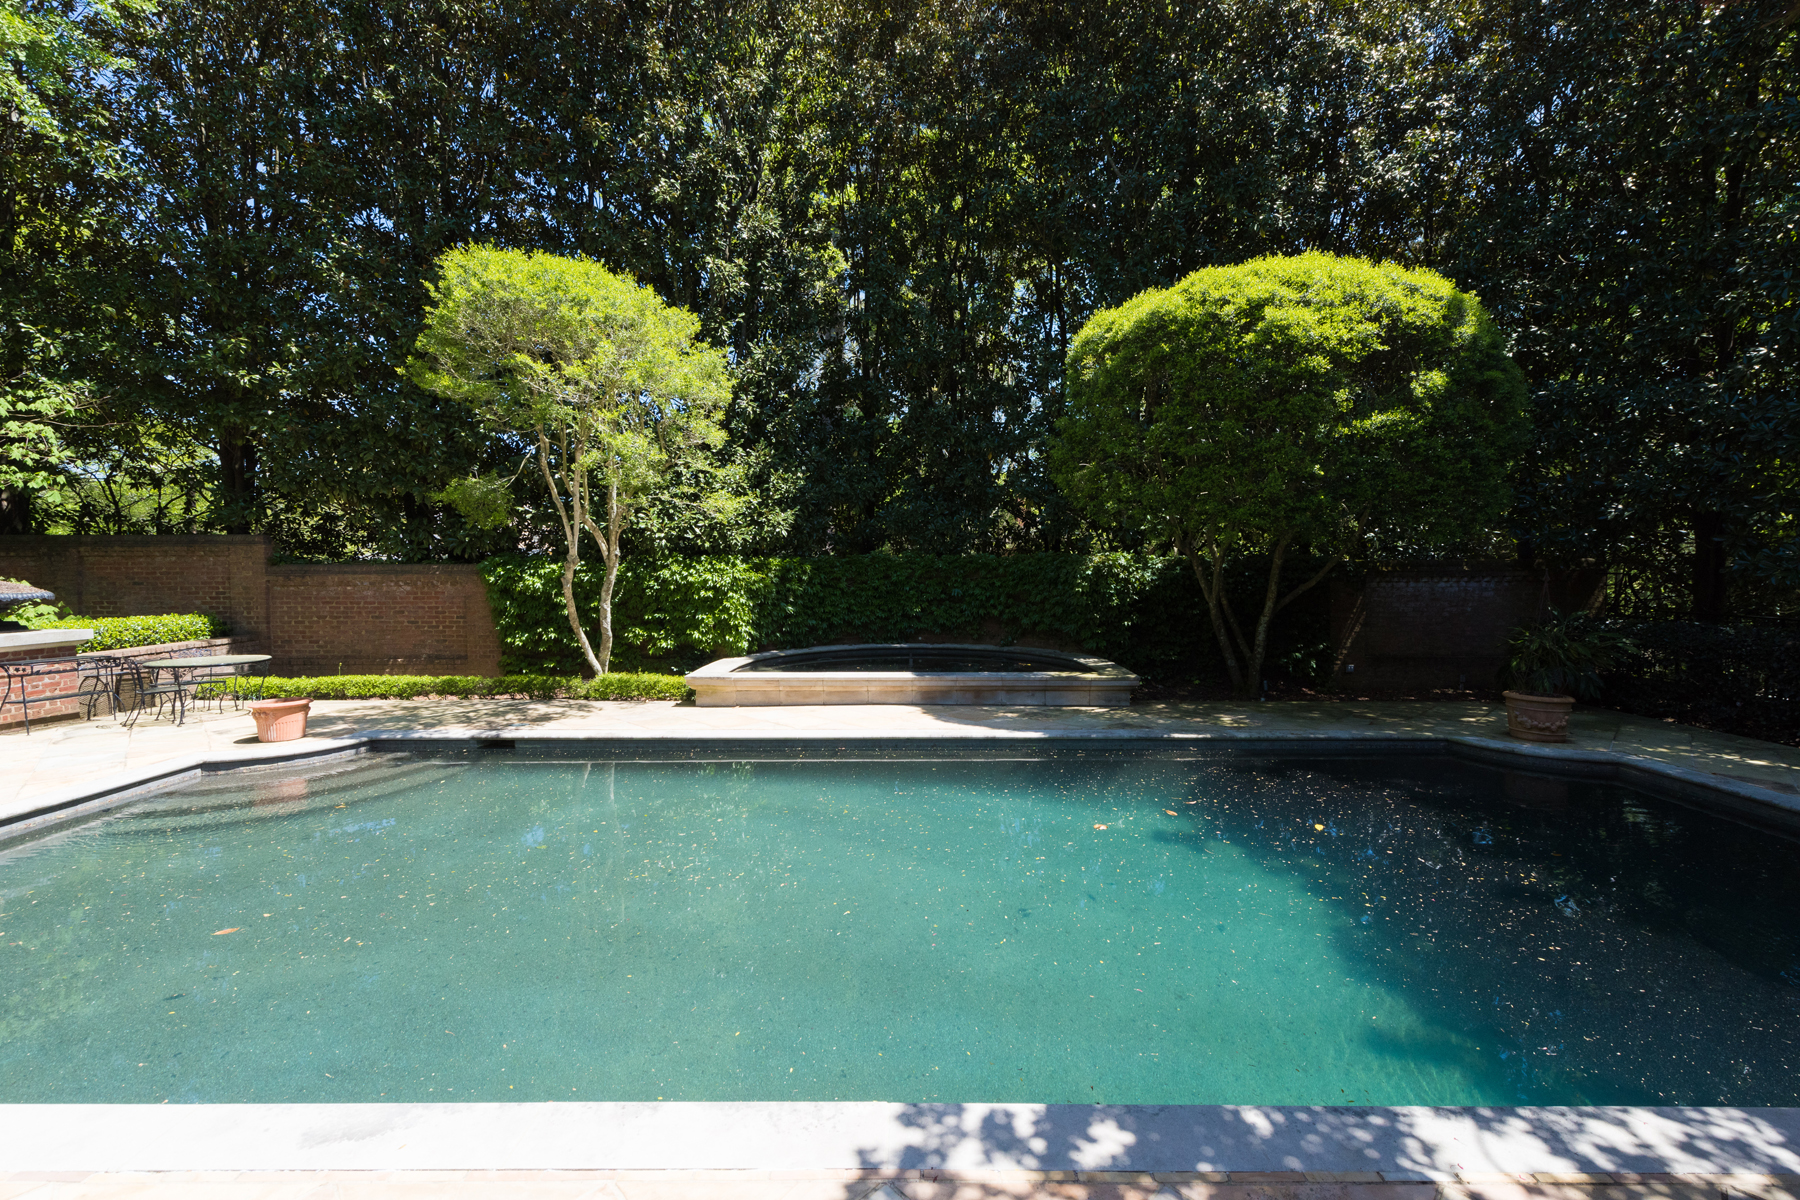 Additional photo for property listing at One Of The Most Beautiful Estates In Atlanta 390 W Paces Ferry Road NW Atlanta, Georgia 30305 United States